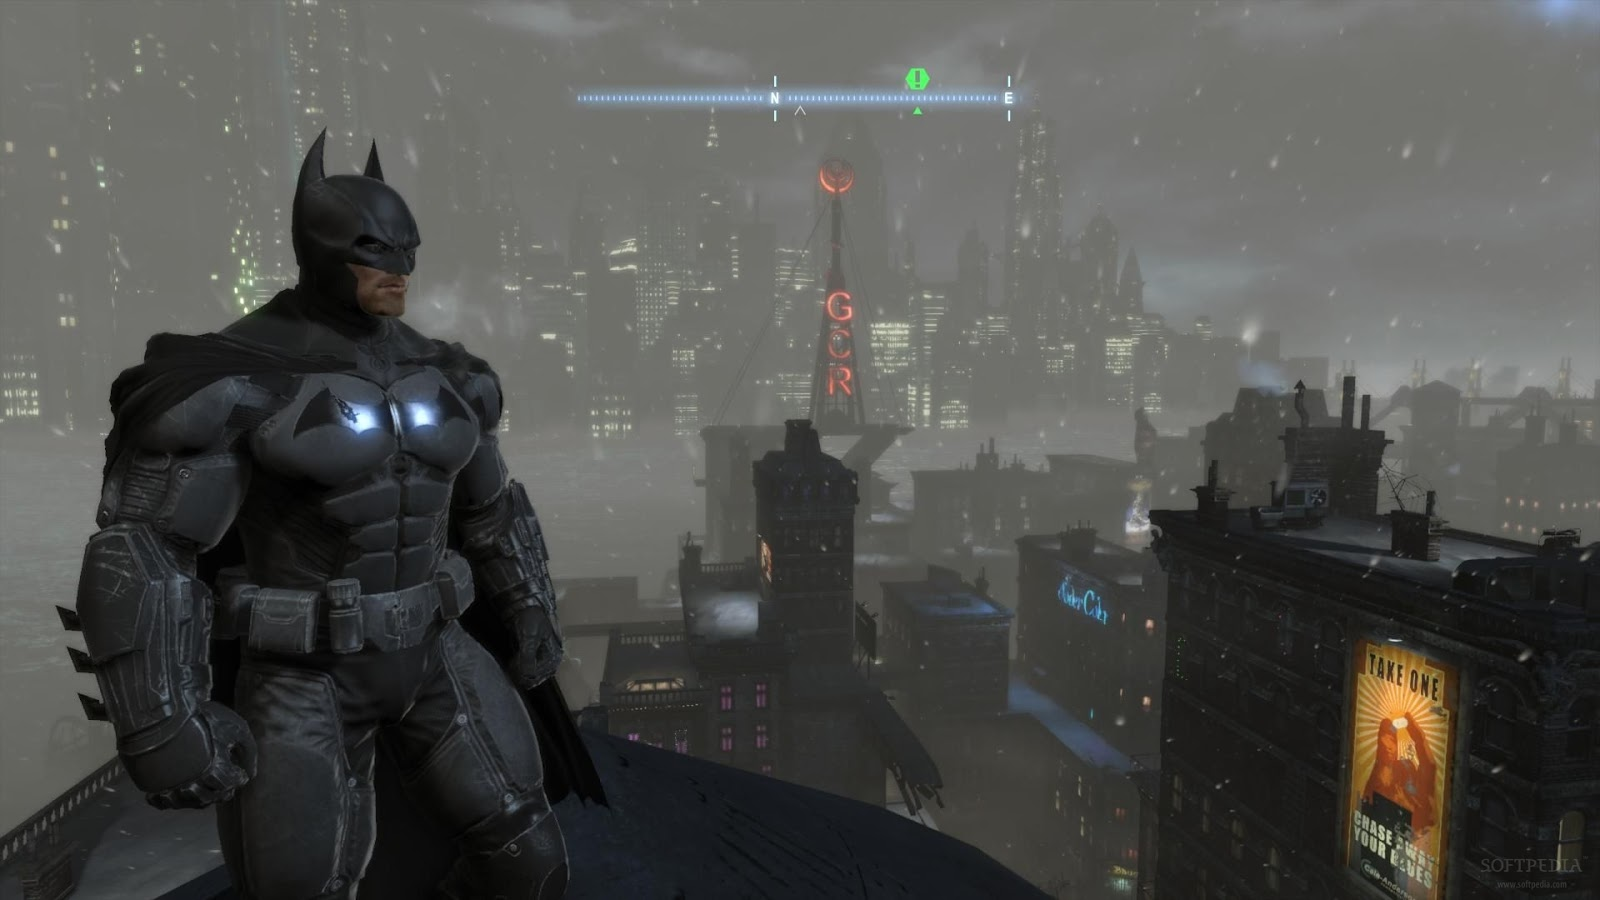 تحميل لعبة batman arkham origins wifi4games